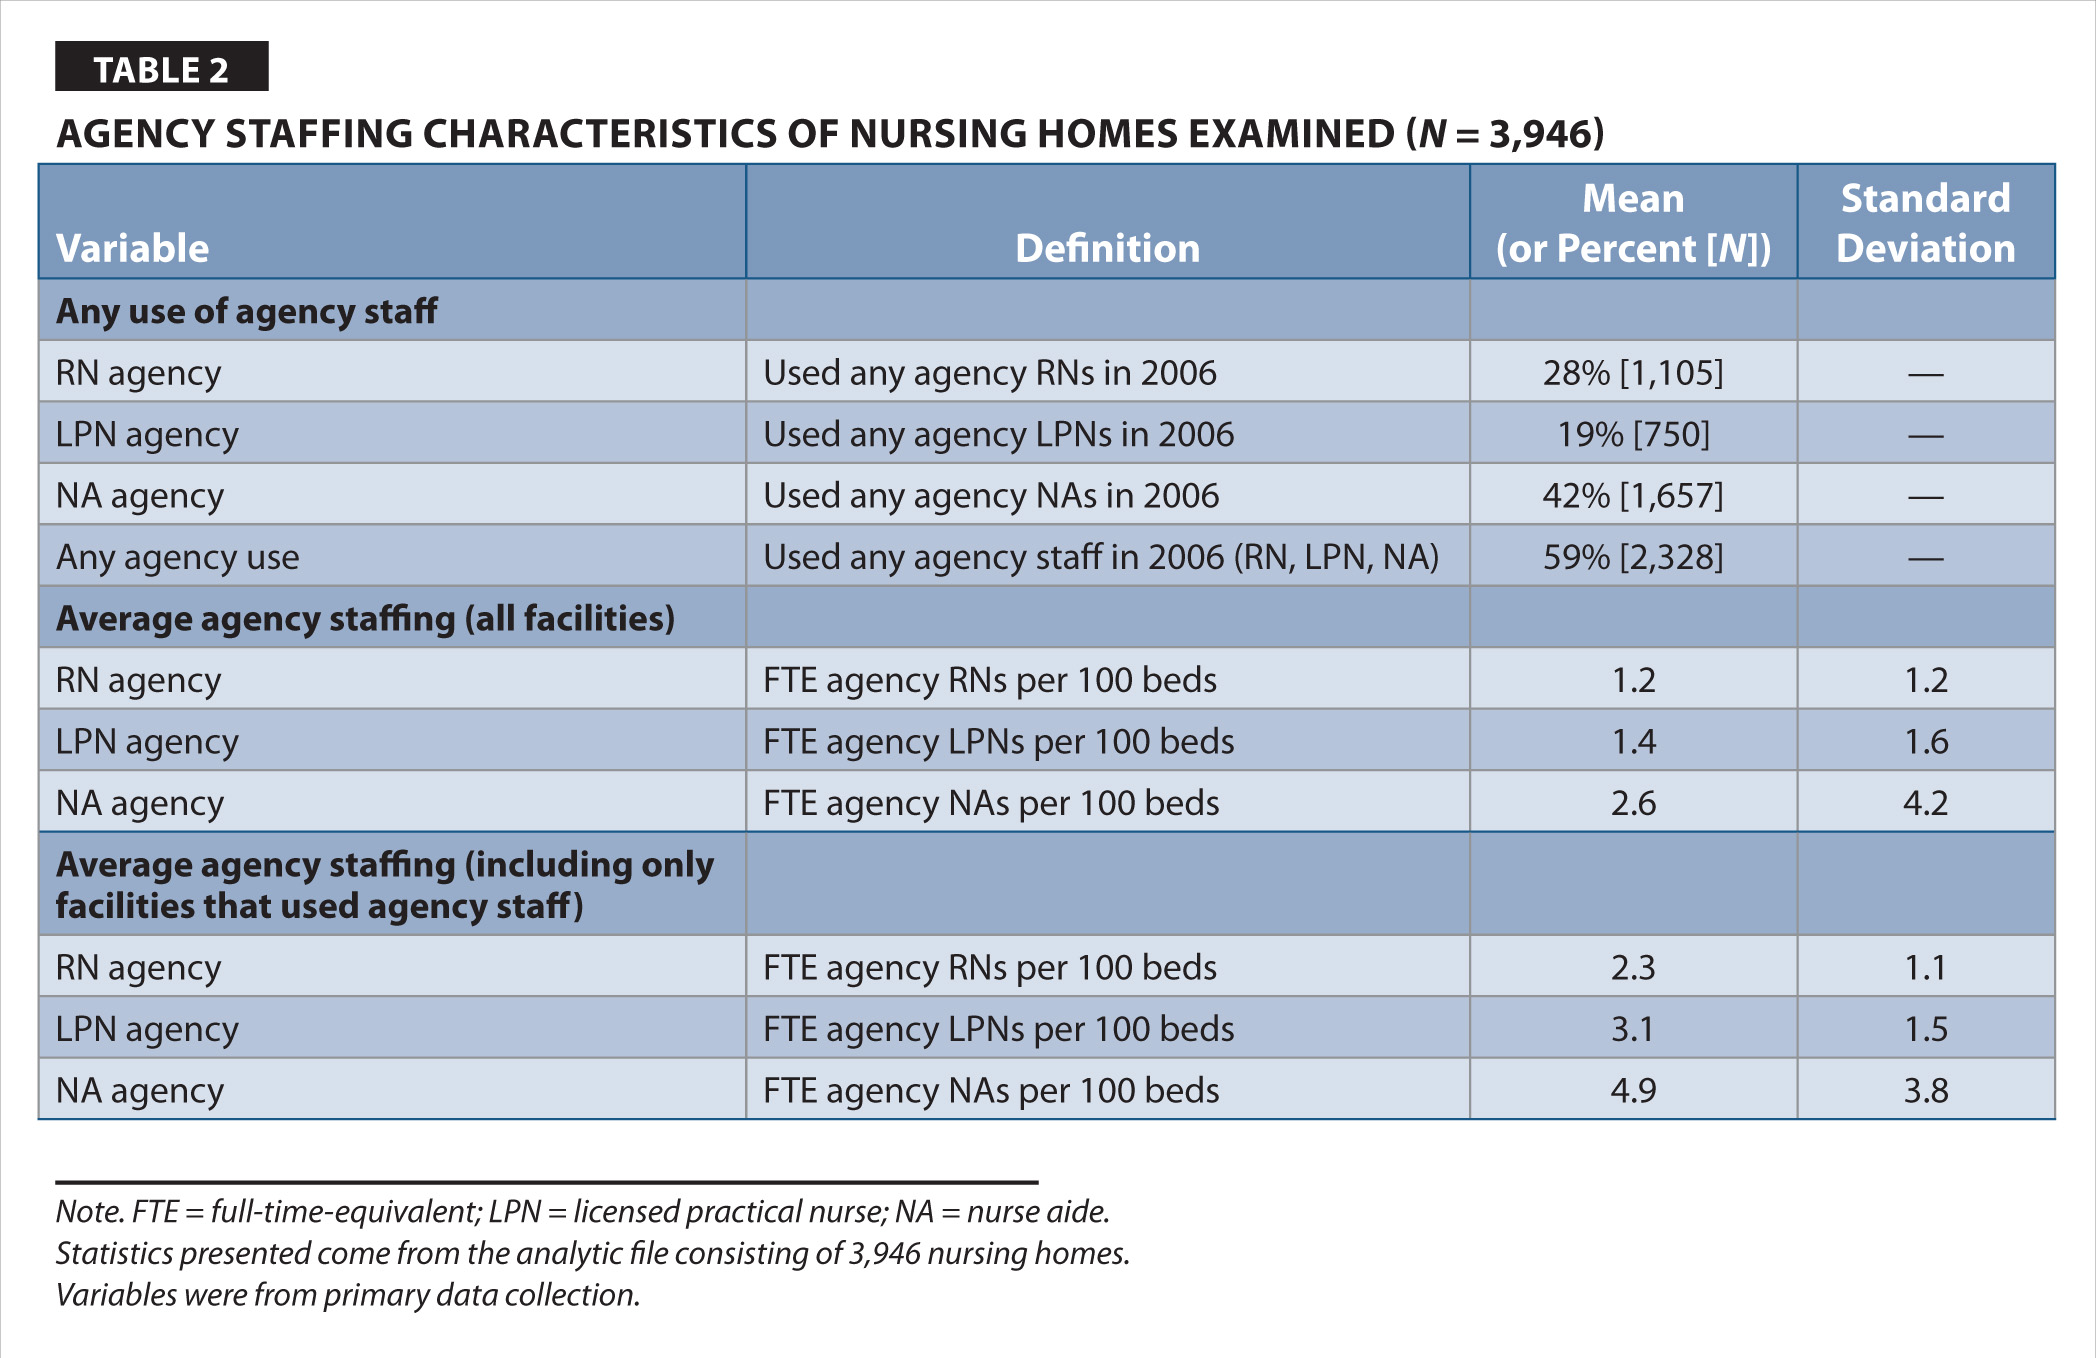 Agency Staffing Characteristics of Nursing Homes Examined (N = 3,946)